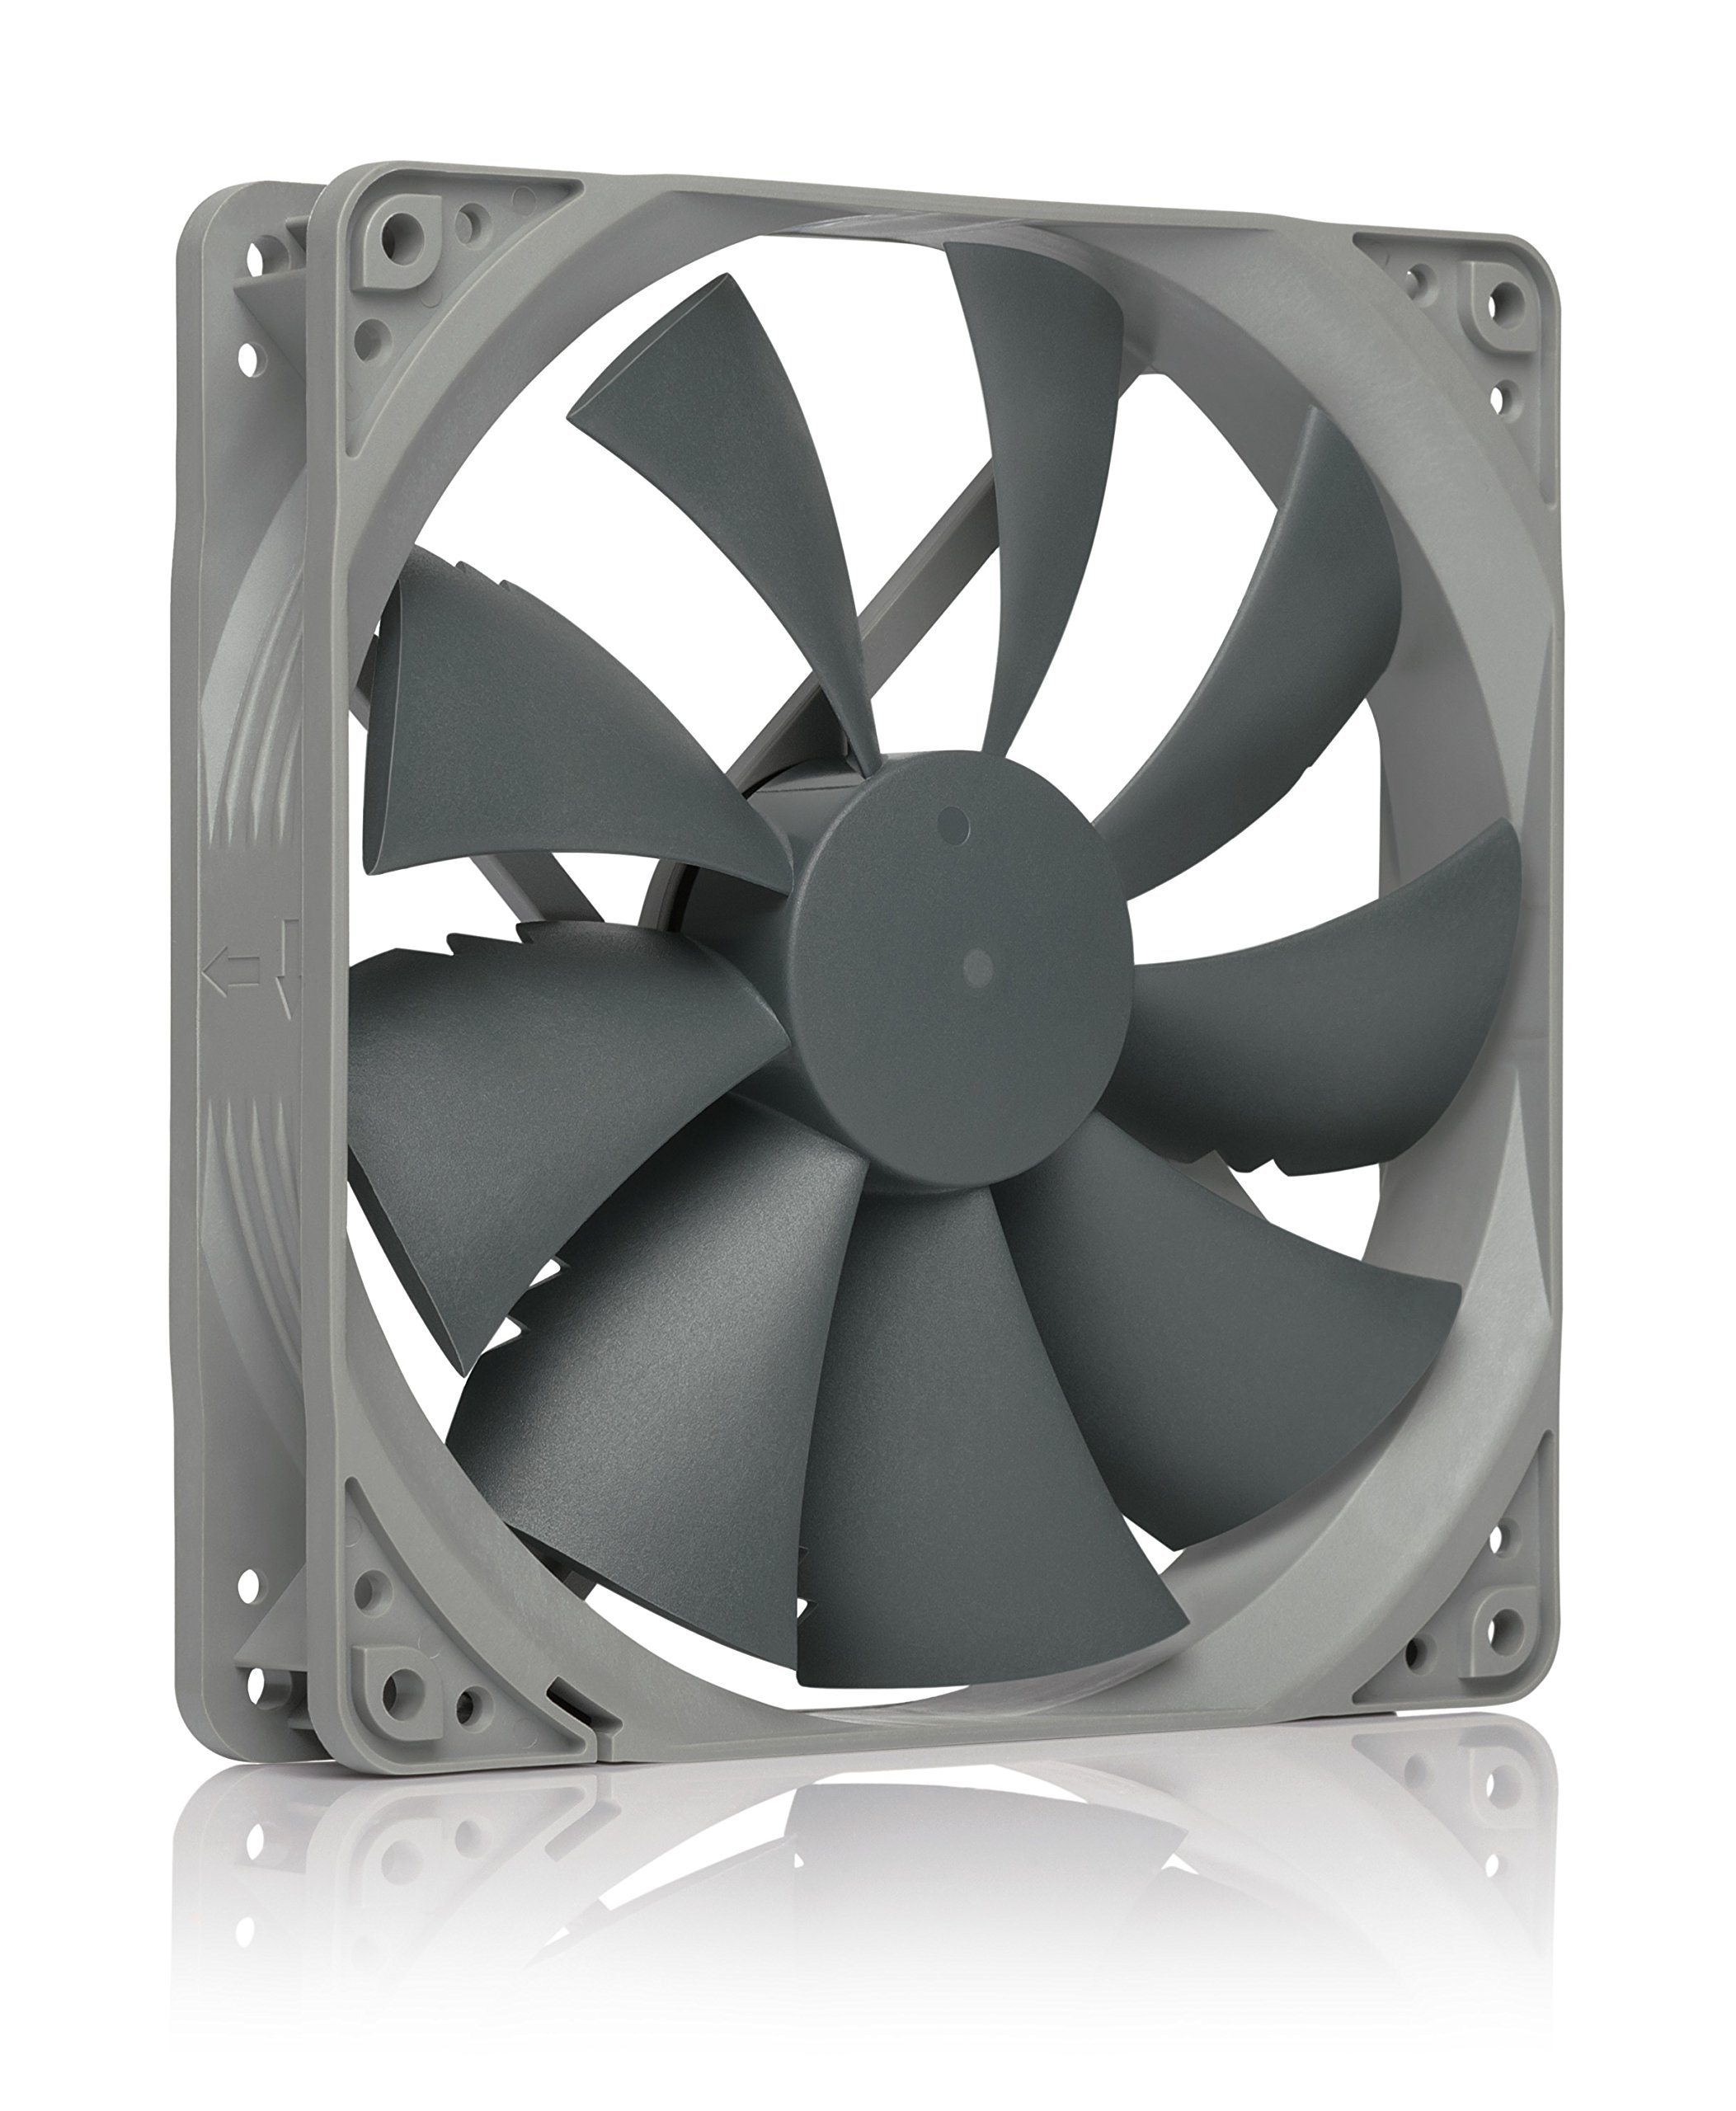 Noctua NF-P14s redux-1500 PWM, High Performance Cooling Fan, 4-Pin, 1500 RPM (140mm, Grey) by NOCTUA